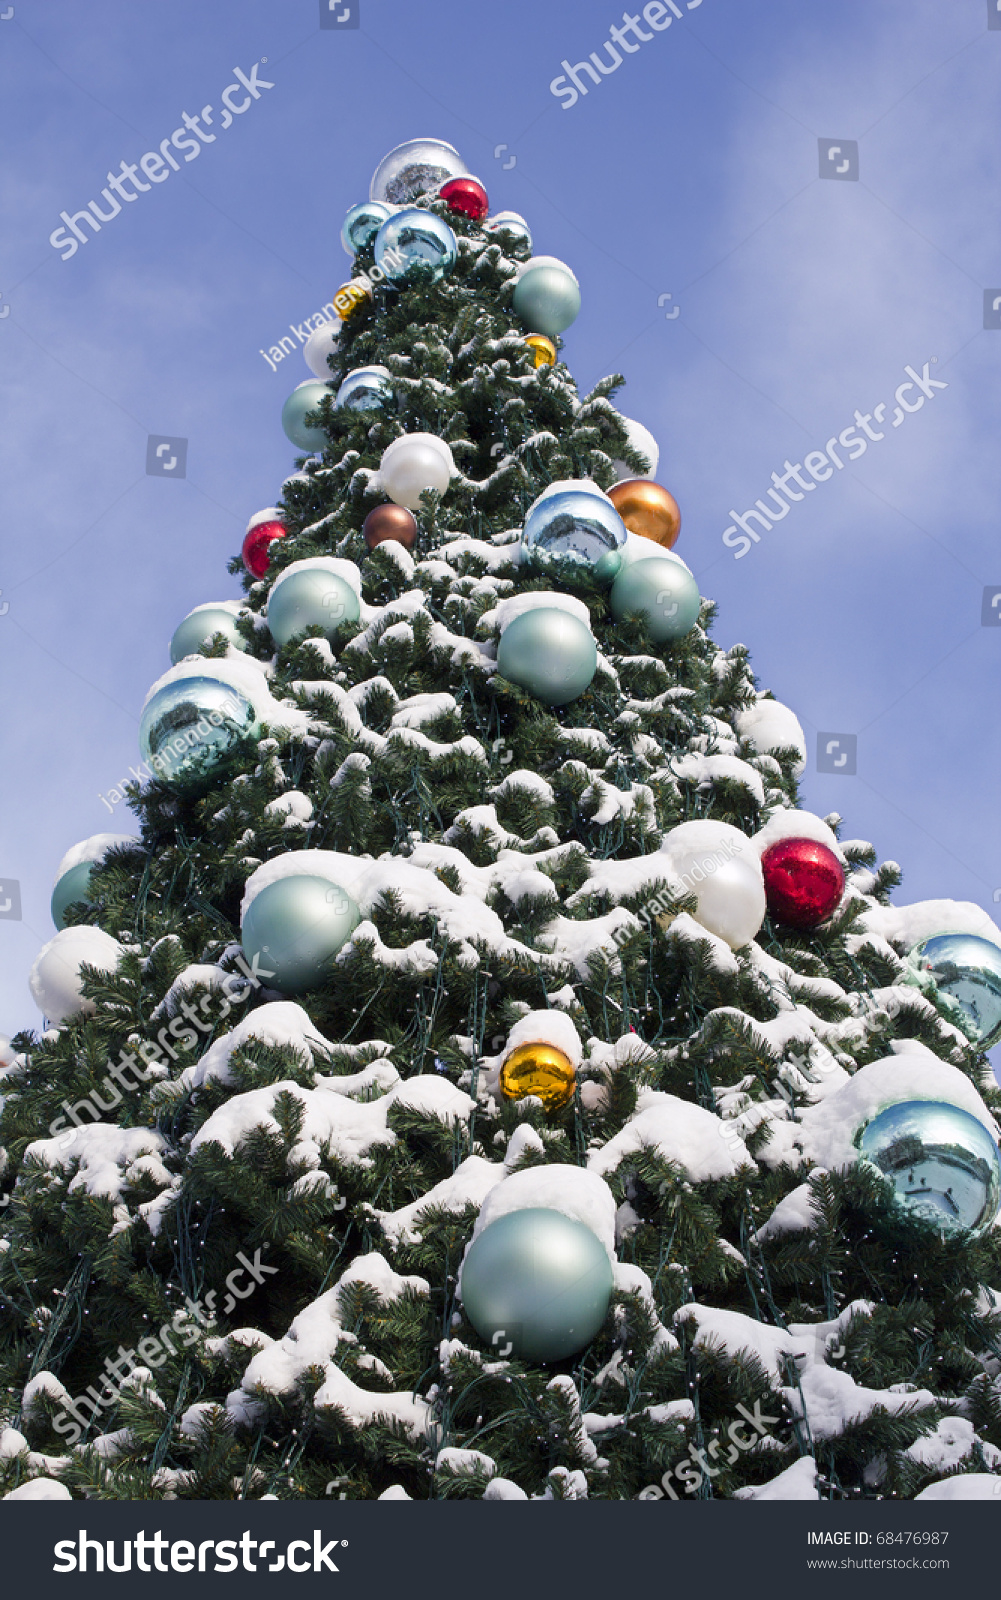 How to decorate tall outdoor christmas tree - Large Outdoor Christmas Tree Decorated With Balls And Covered With Snow Preview Save To A Lightbox